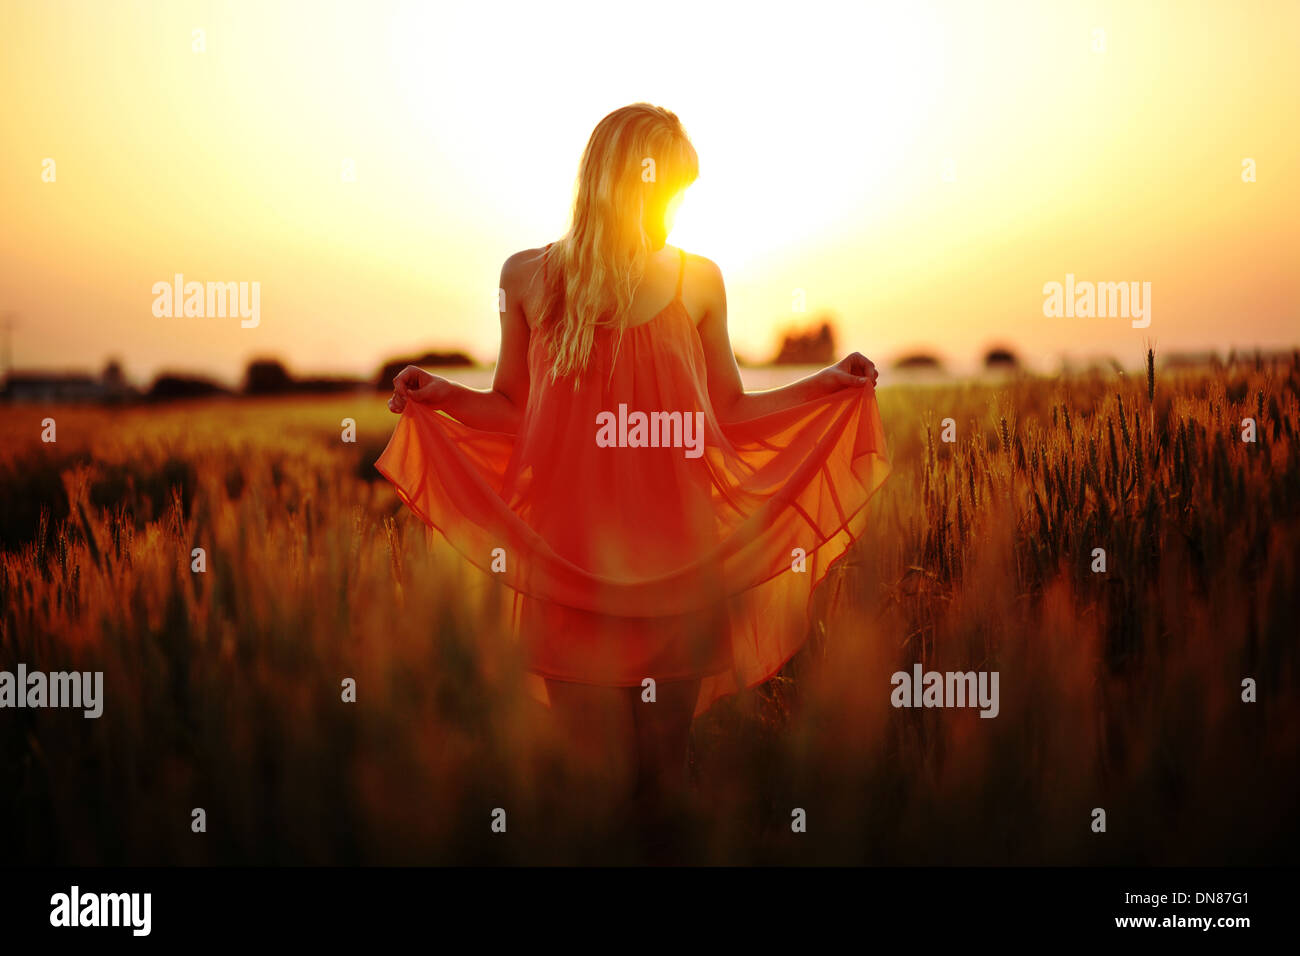 Woman with dress standing in the cornfield at sunset - Stock Image